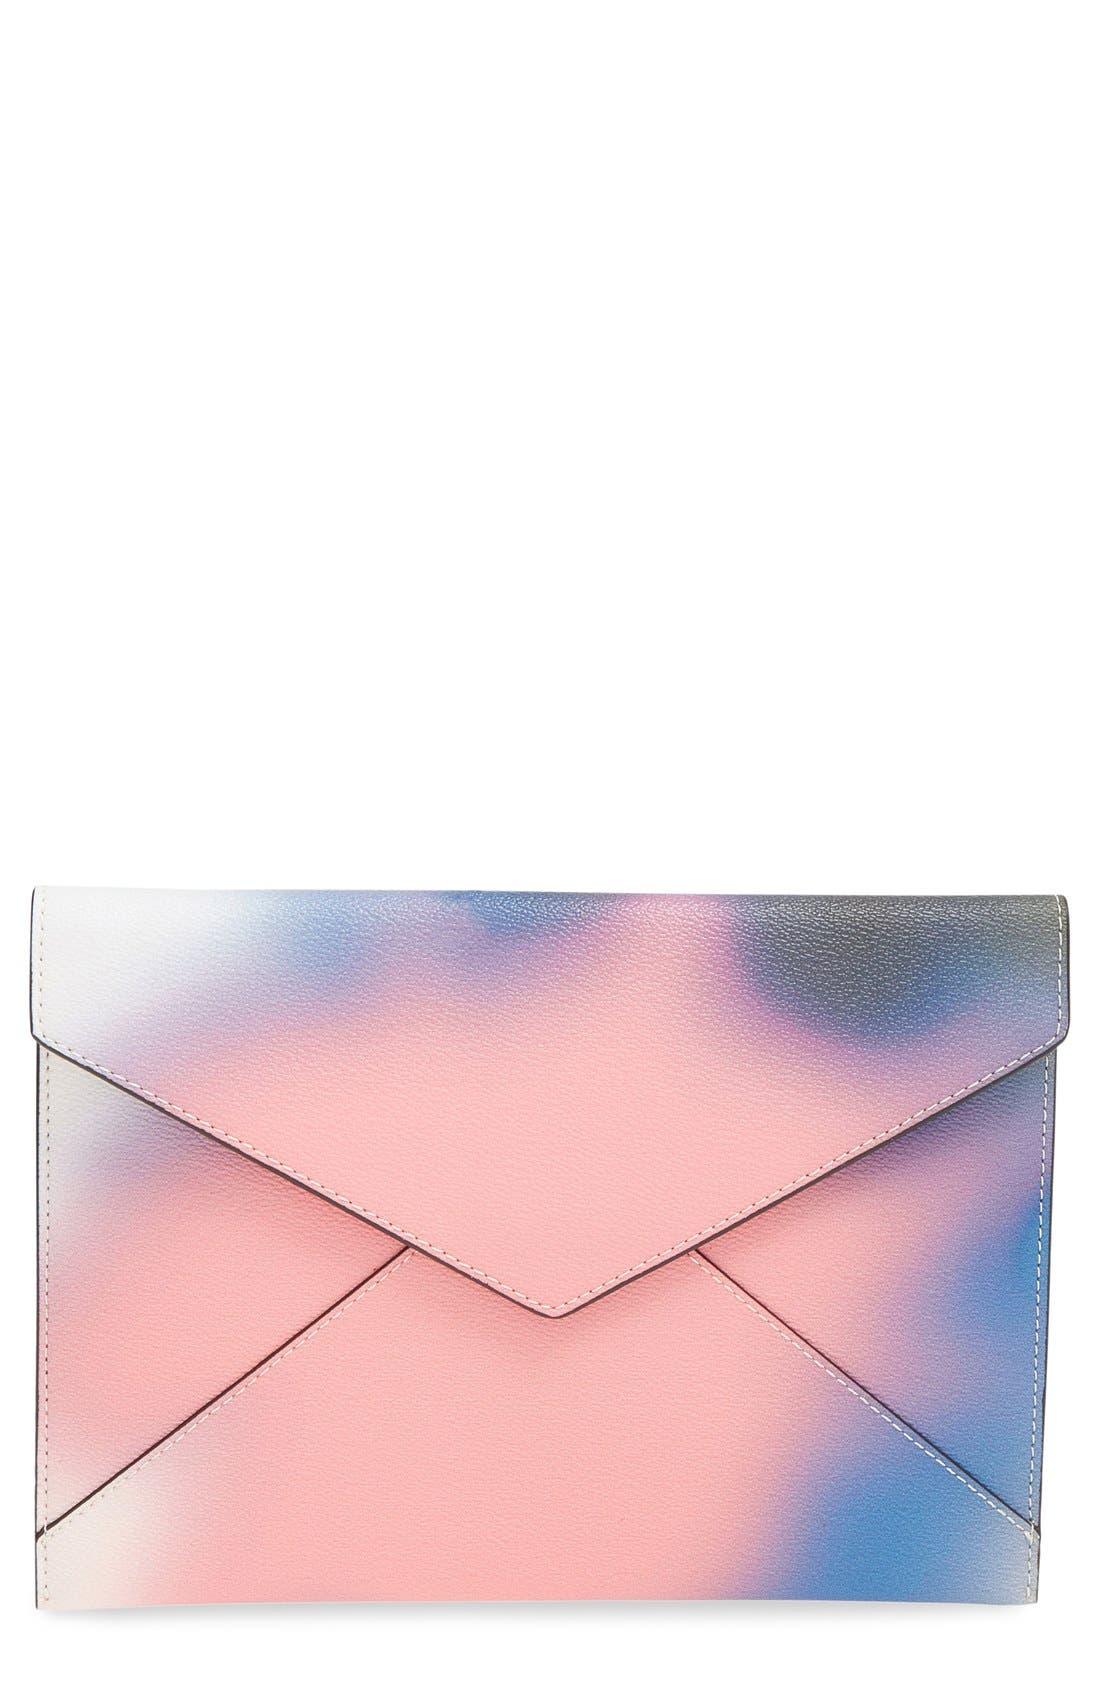 REBECCA MINKOFF 'Leo' Envelope Clutch, Main, color, 650